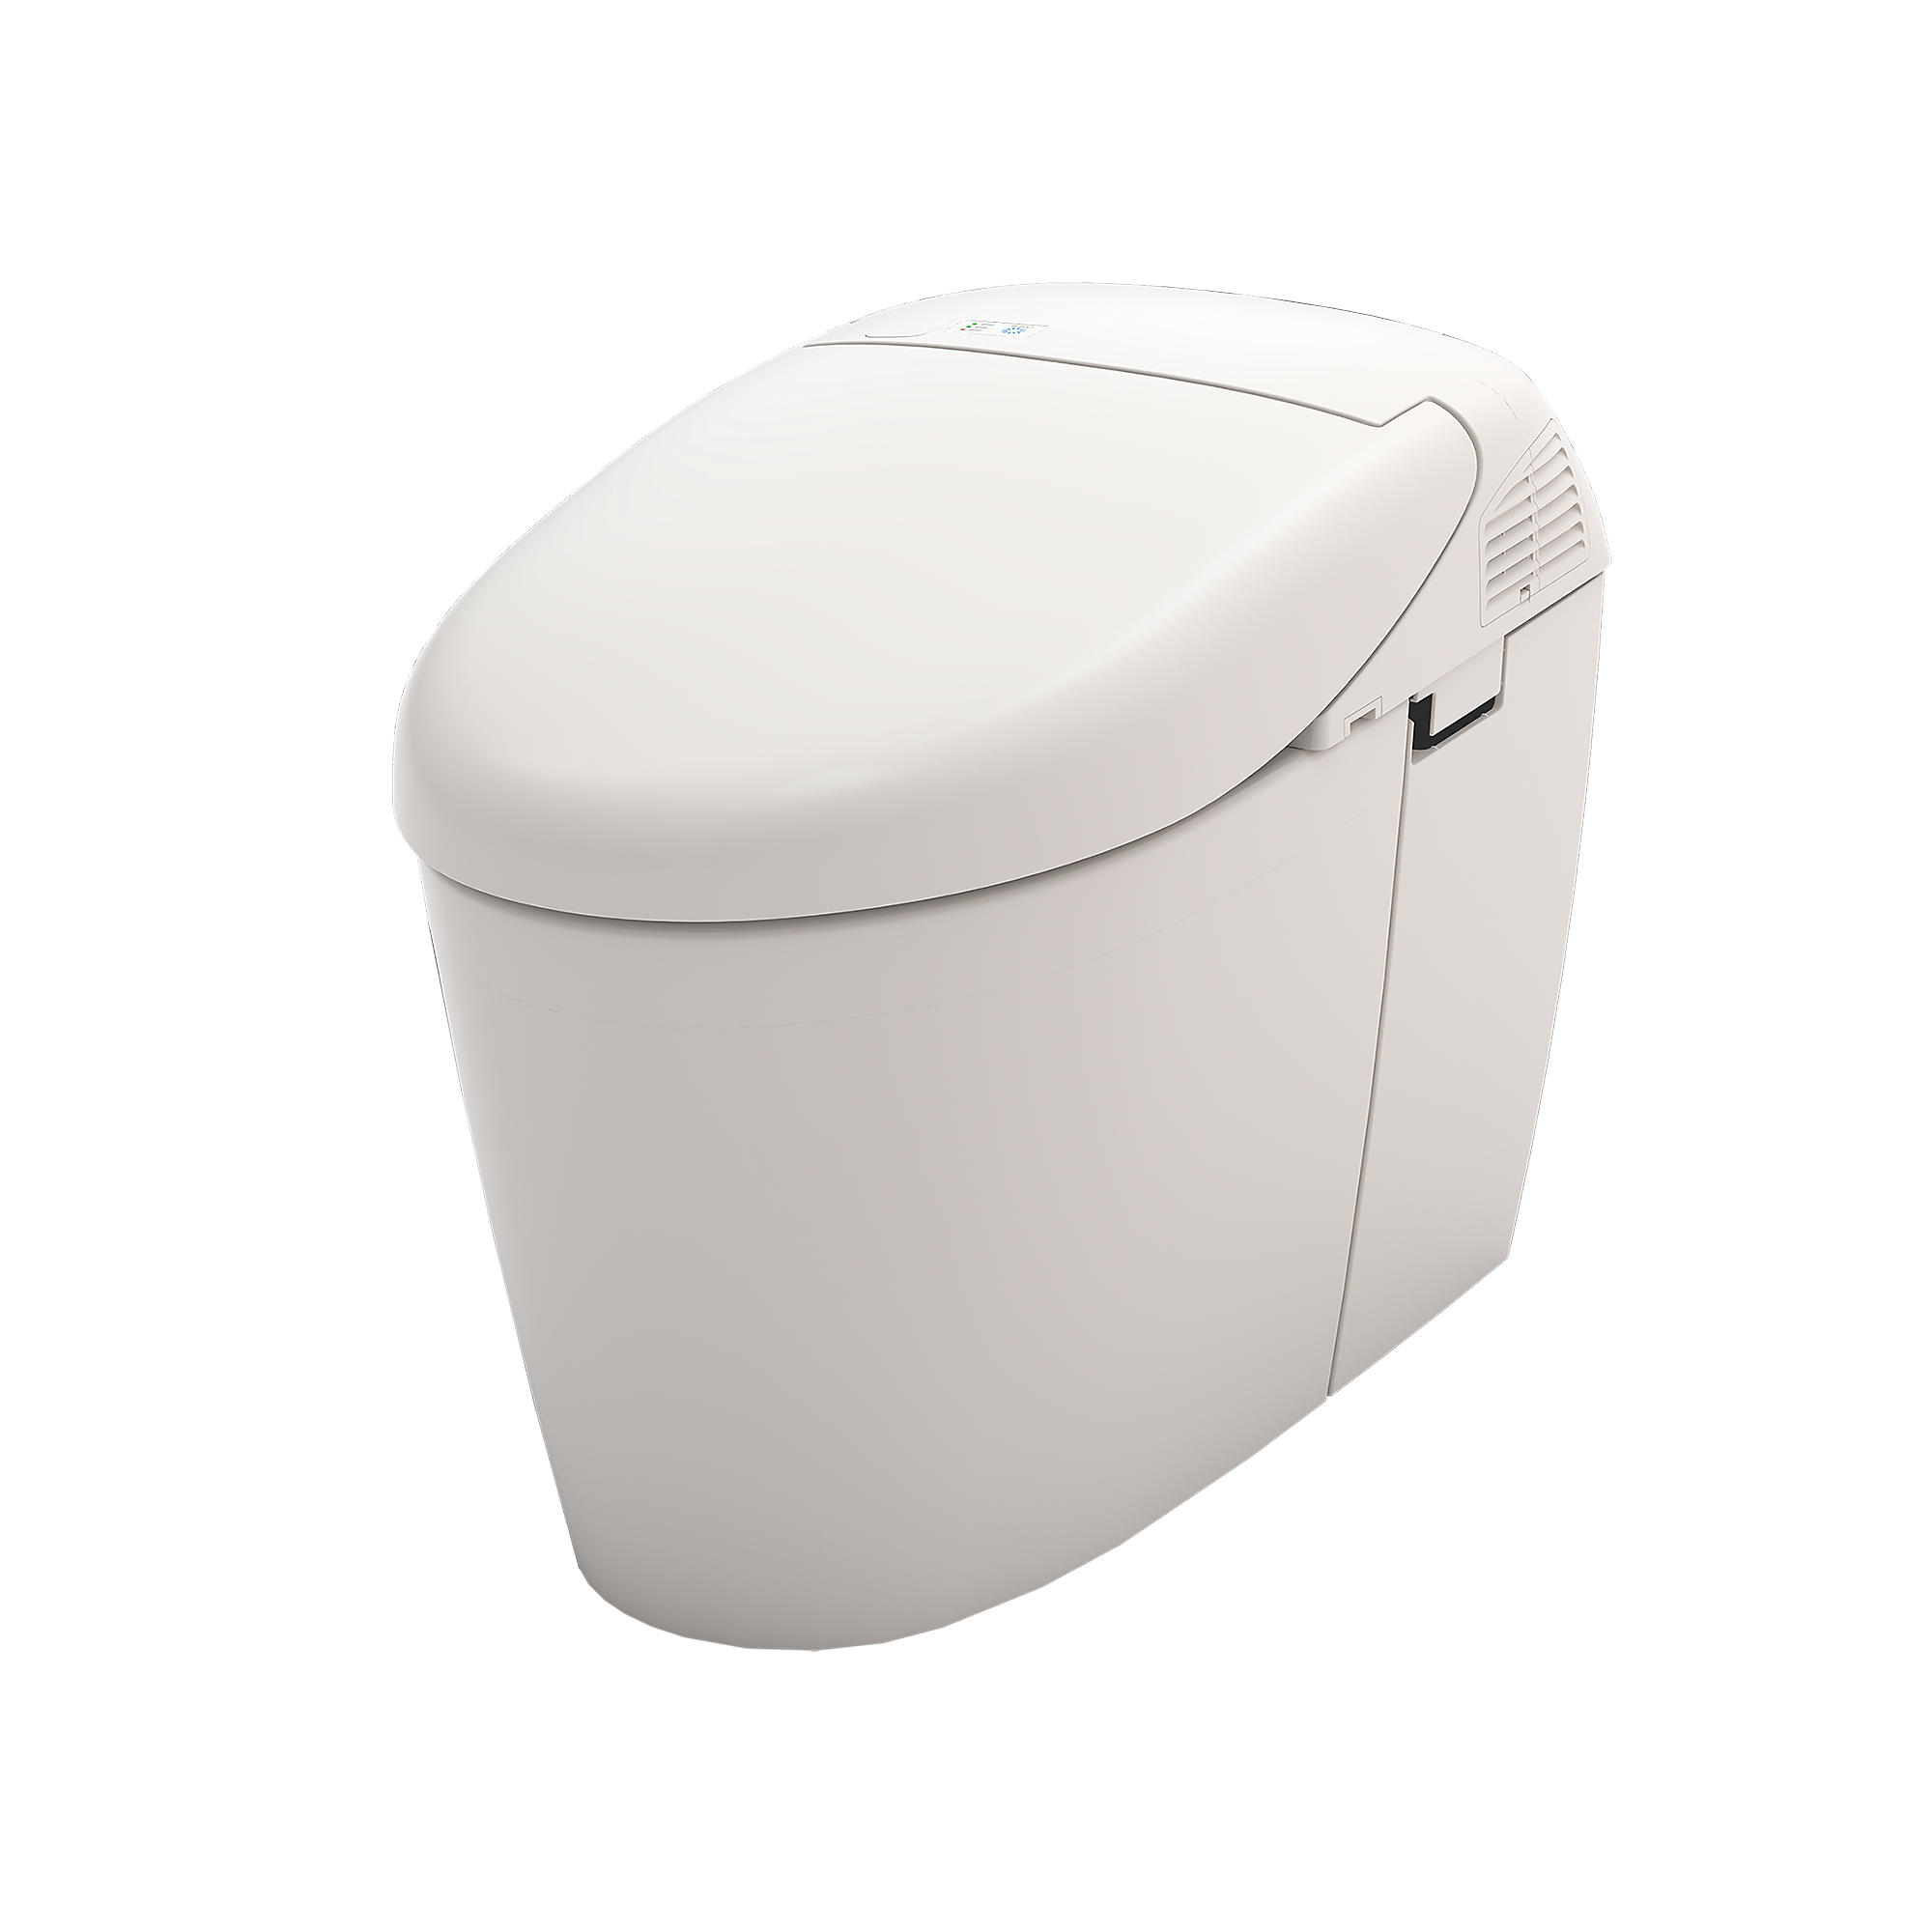 Ms952cumg 12 neorest  500h dual flush toilet  1 0 gpf   0 8 gpf 0